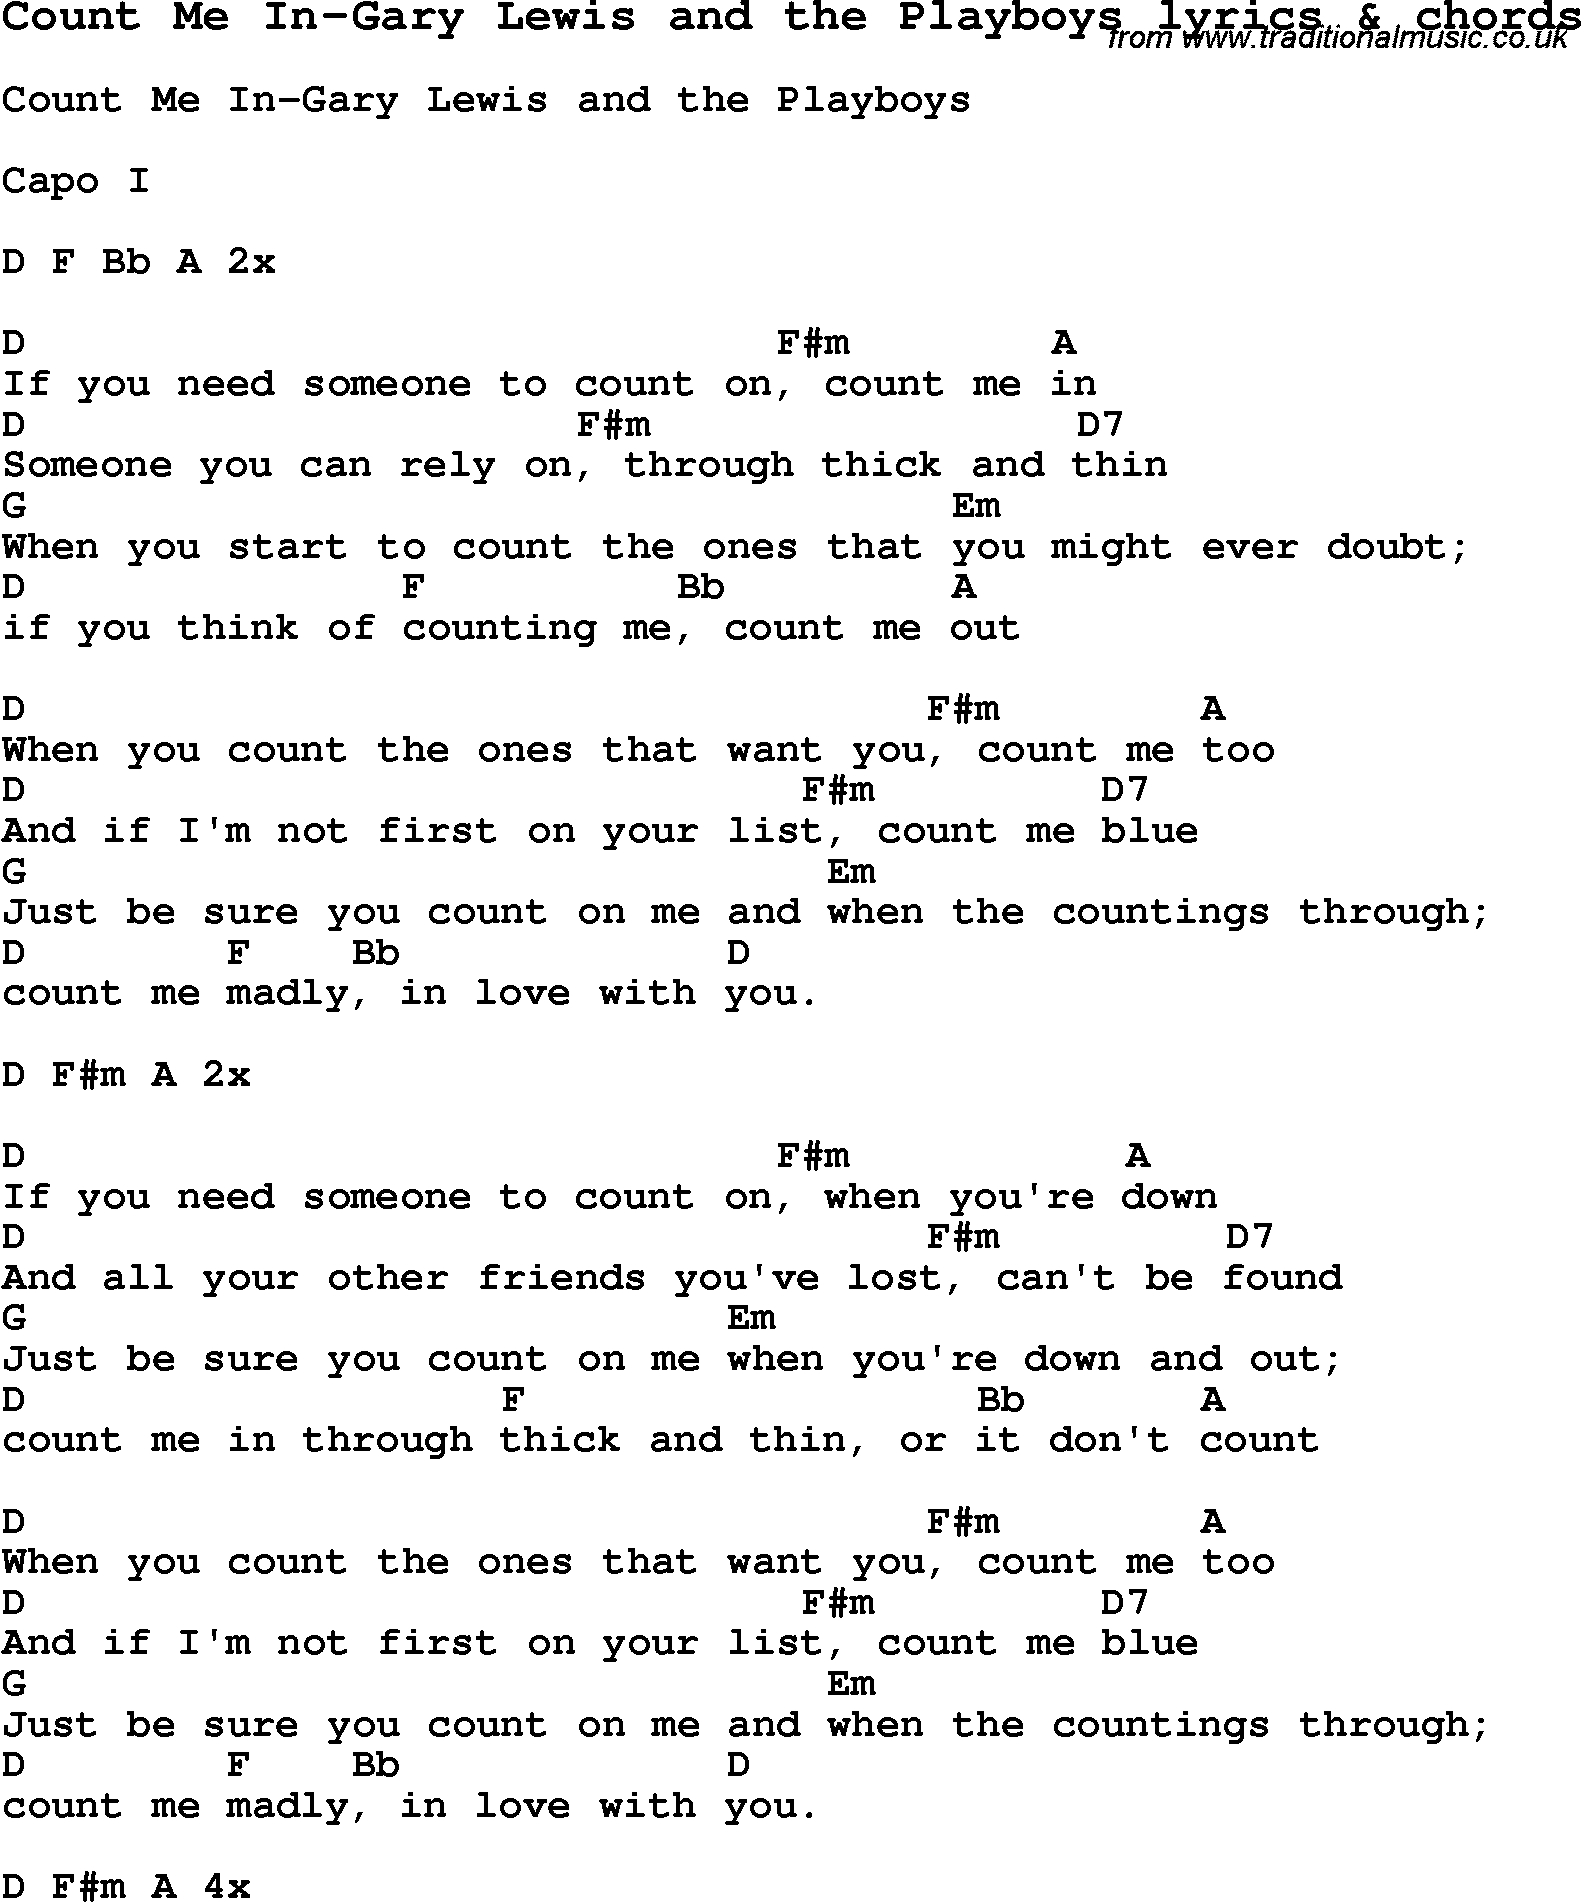 Count On Me Chords Love Song Lyrics Forcount Me In Gary Lewis And The Playboys With